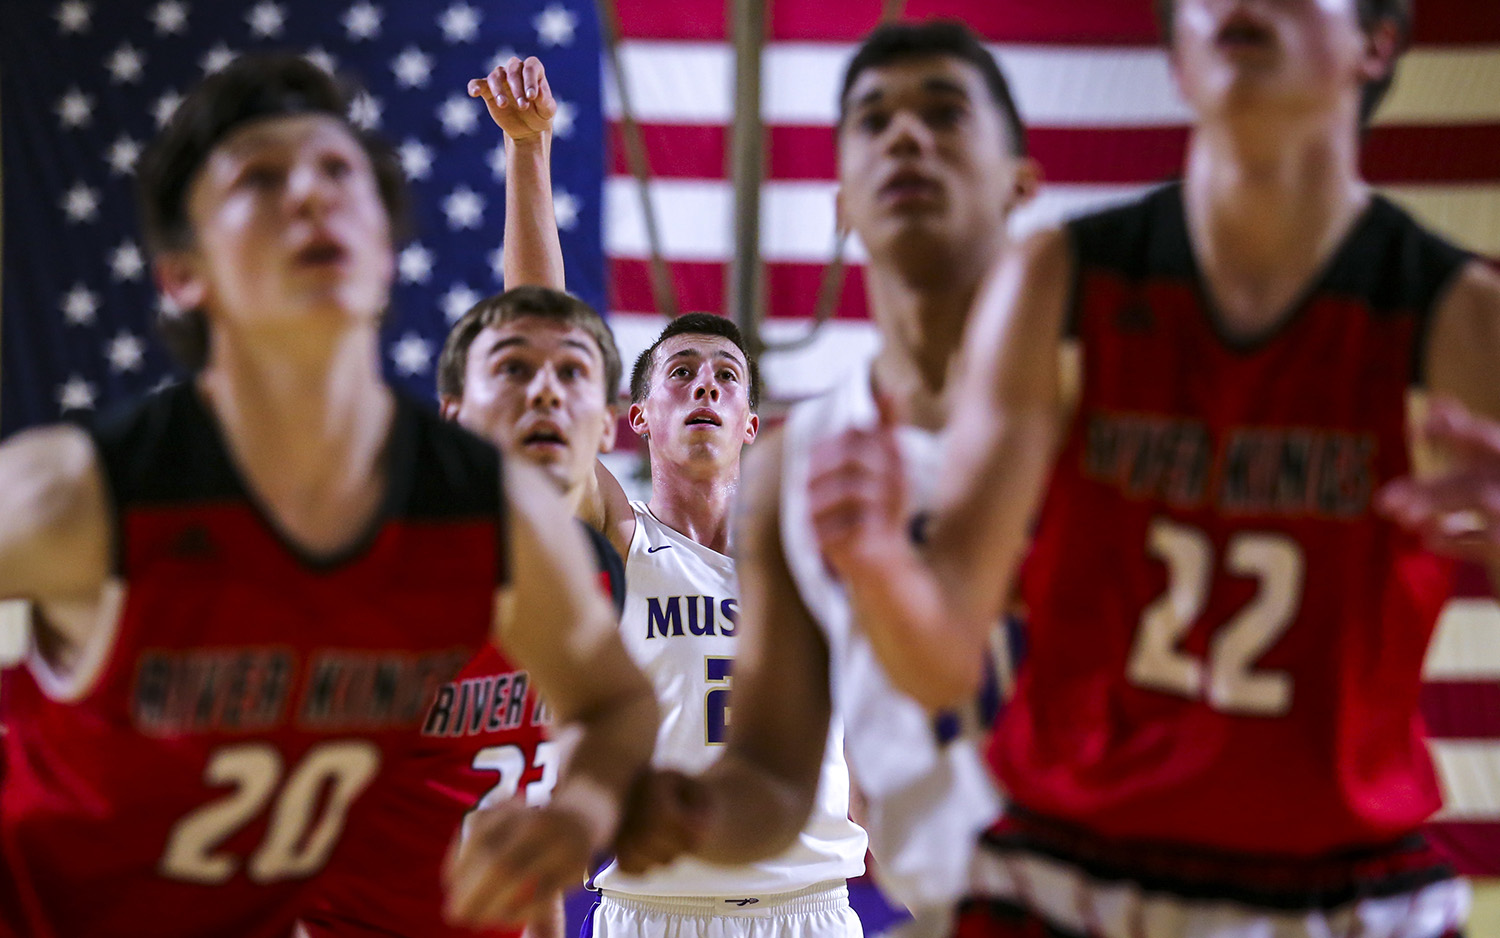 Muscatine's Joe Wieskamp (21) watches after shooting a free throw during the second quarter of their game at Muscatine High School in Muscatine, Iowa, on Tuesday, Jan. 23, 2018.Wieskamp finished with 31 points and eclipsed 2,000 points for his career in the Muskies' victory.